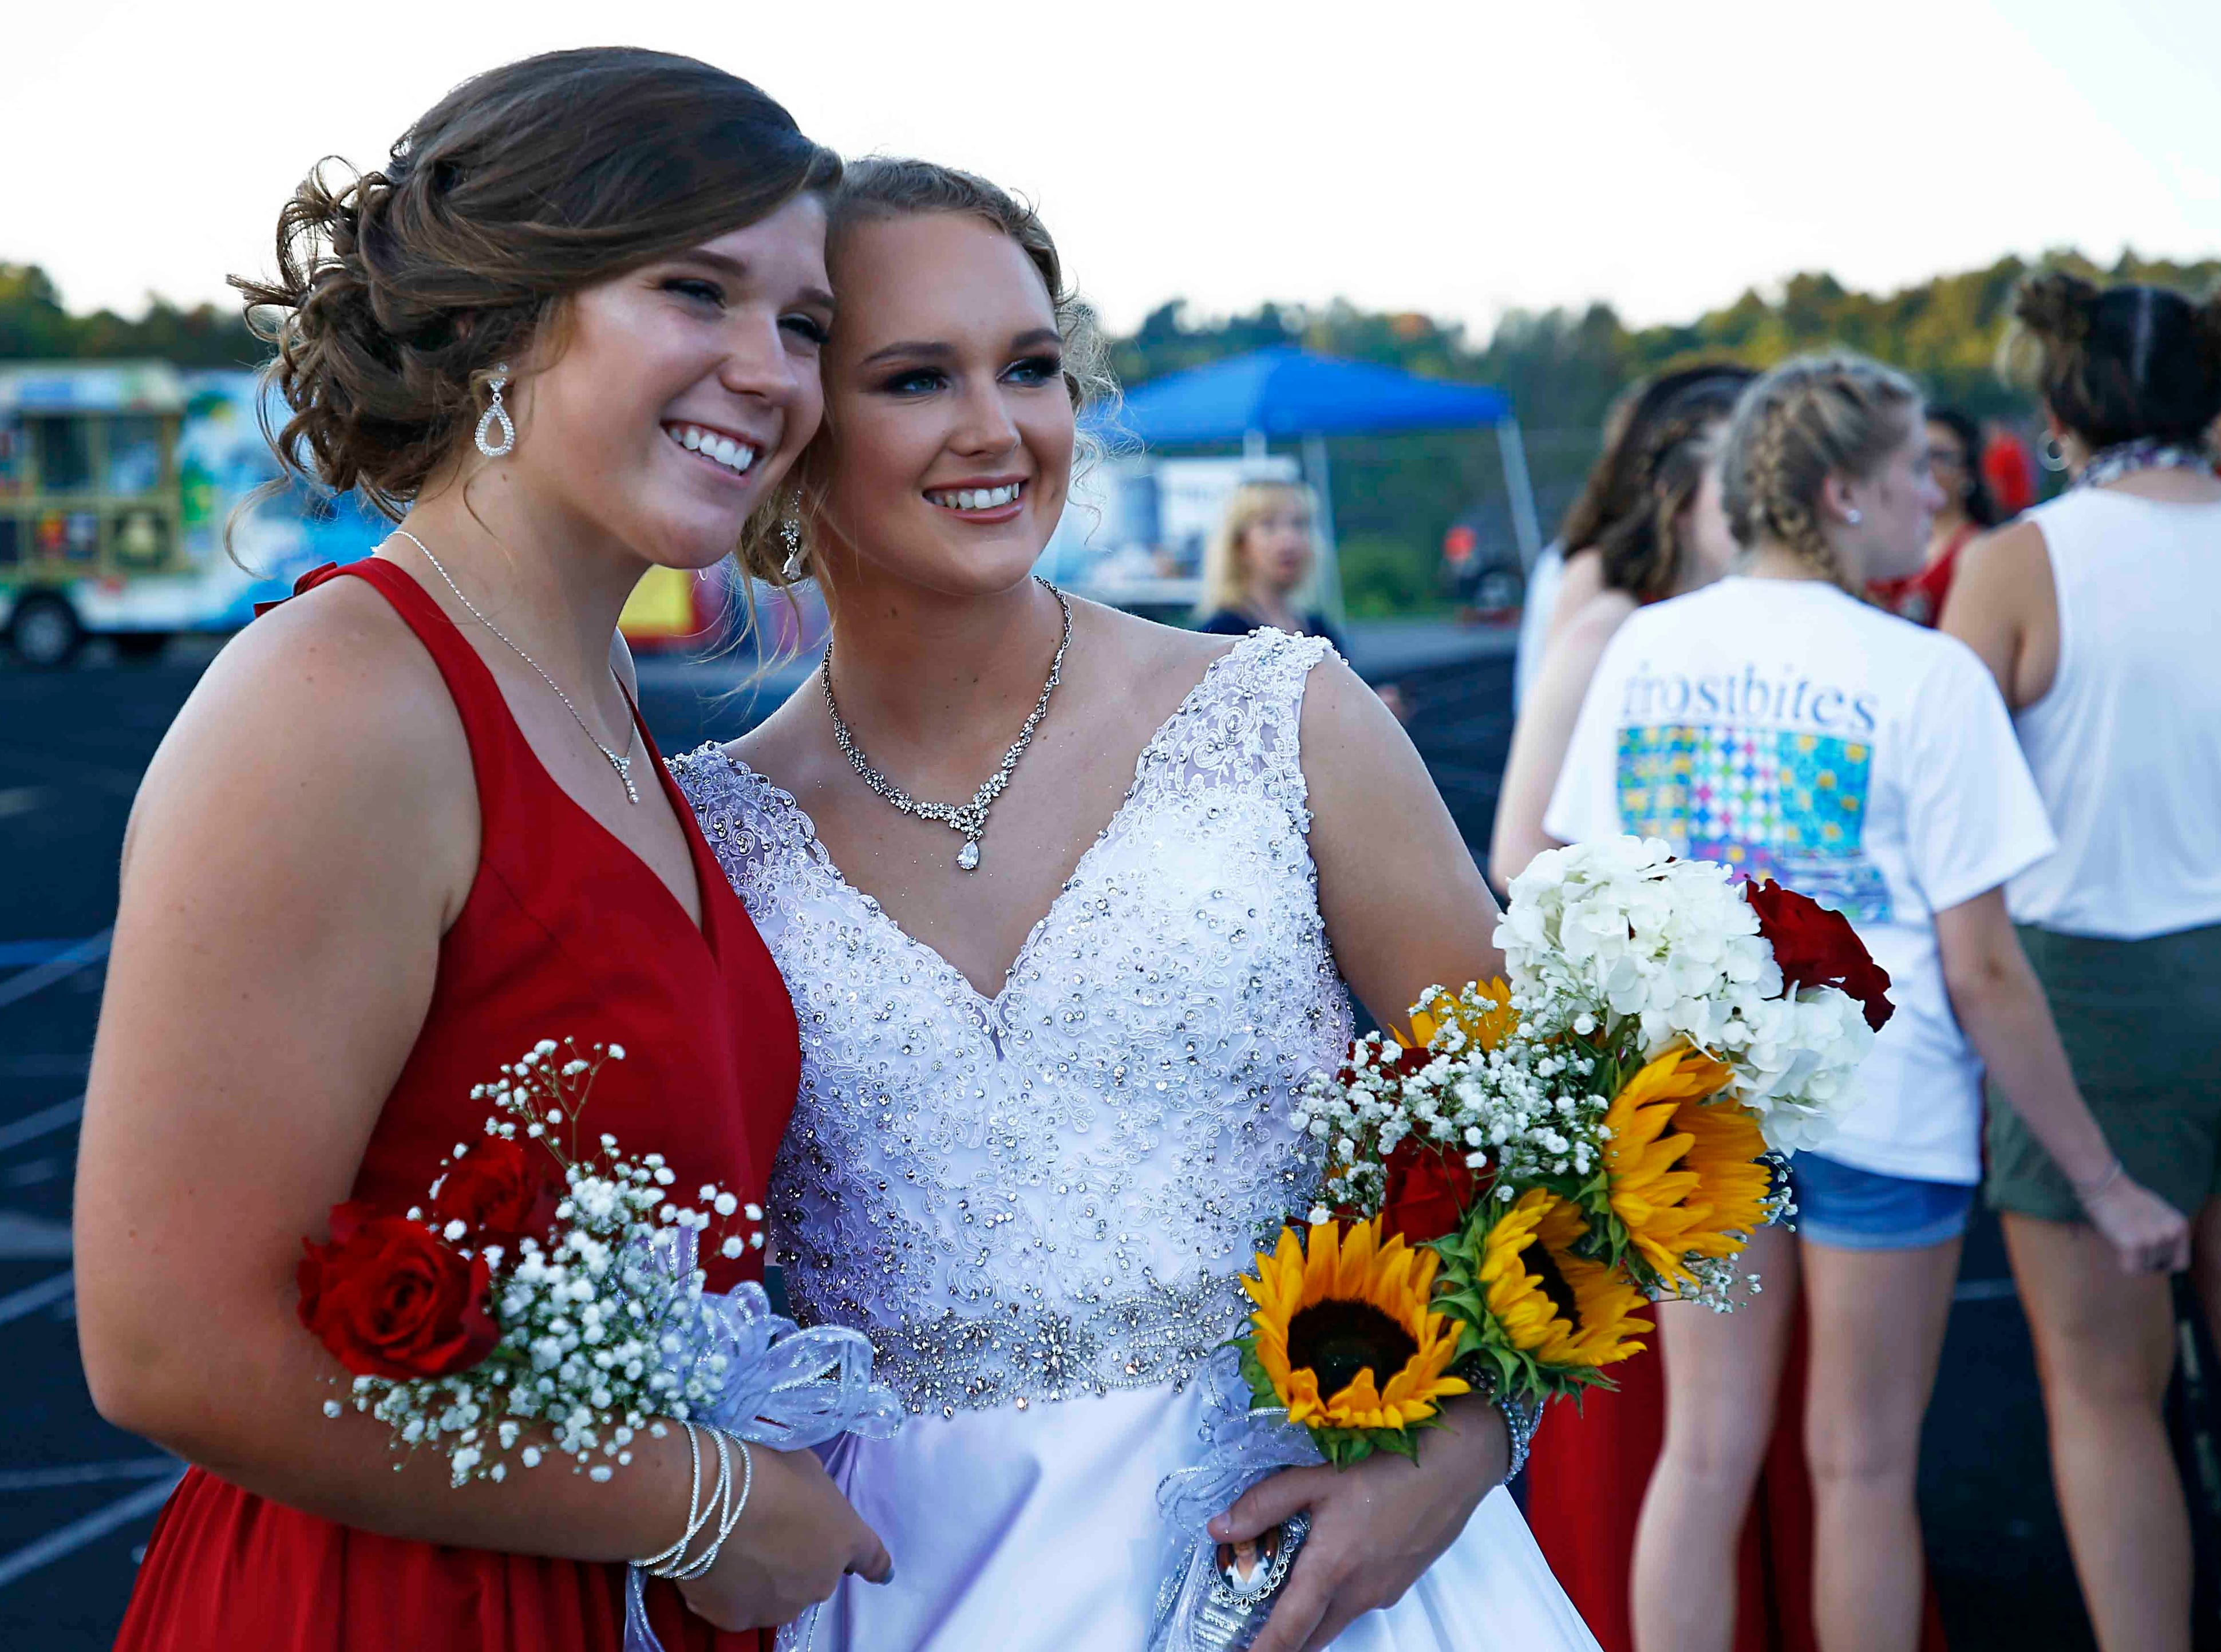 Creek Wood Homecoming Queen Analee Coursey, right, has her photo taken with Emma Street before the game against Montgomery Central Friday, Sept. 14, 2018, in Charlotte, Tenn.